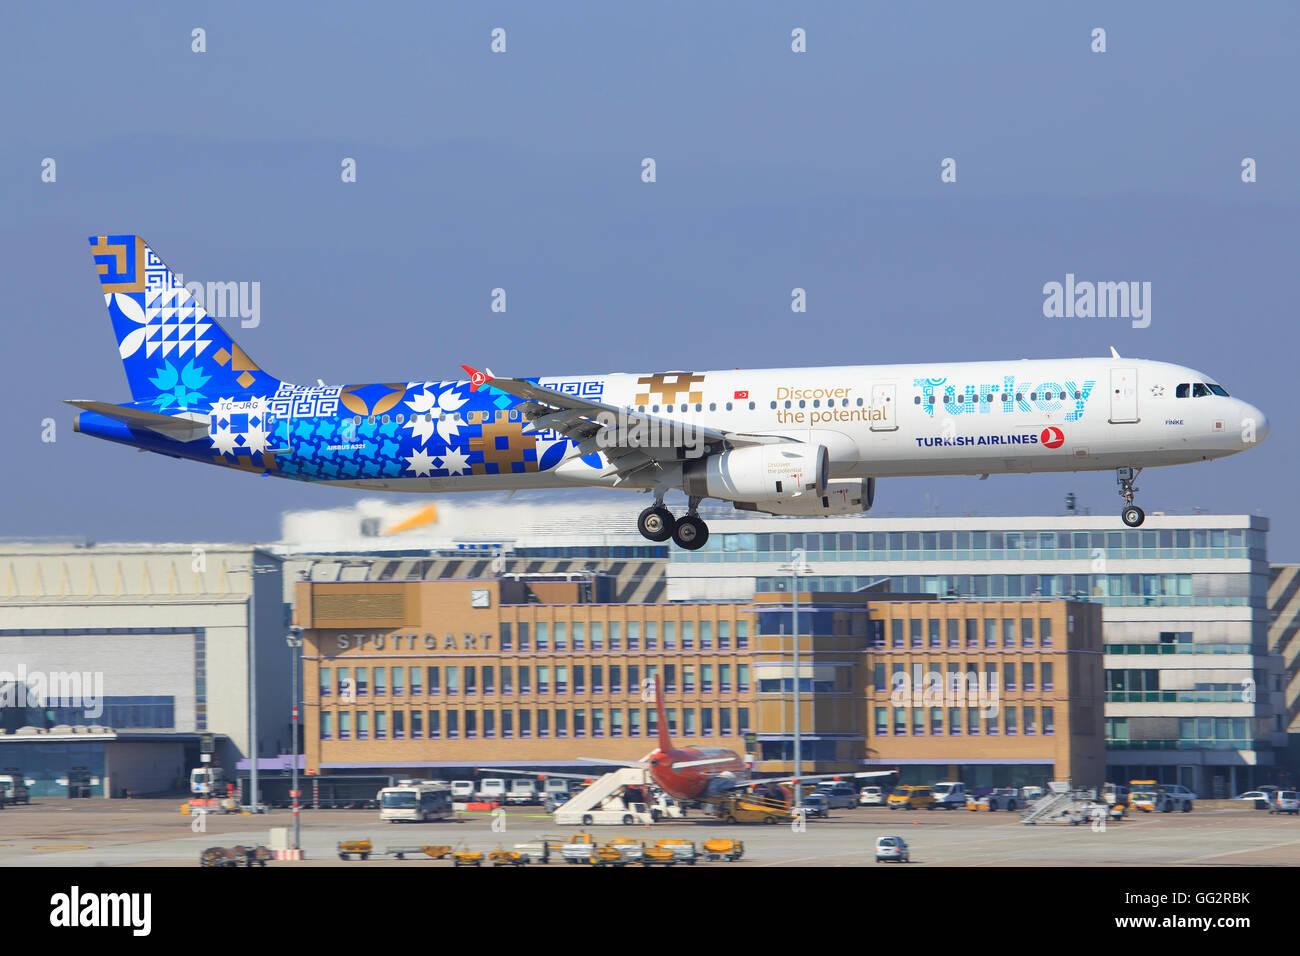 Stuttgart/Germany March 20, 2016: Turkish A321 with 'Discover the potential Turkey' at Stuttgart Airport. - Stock Image